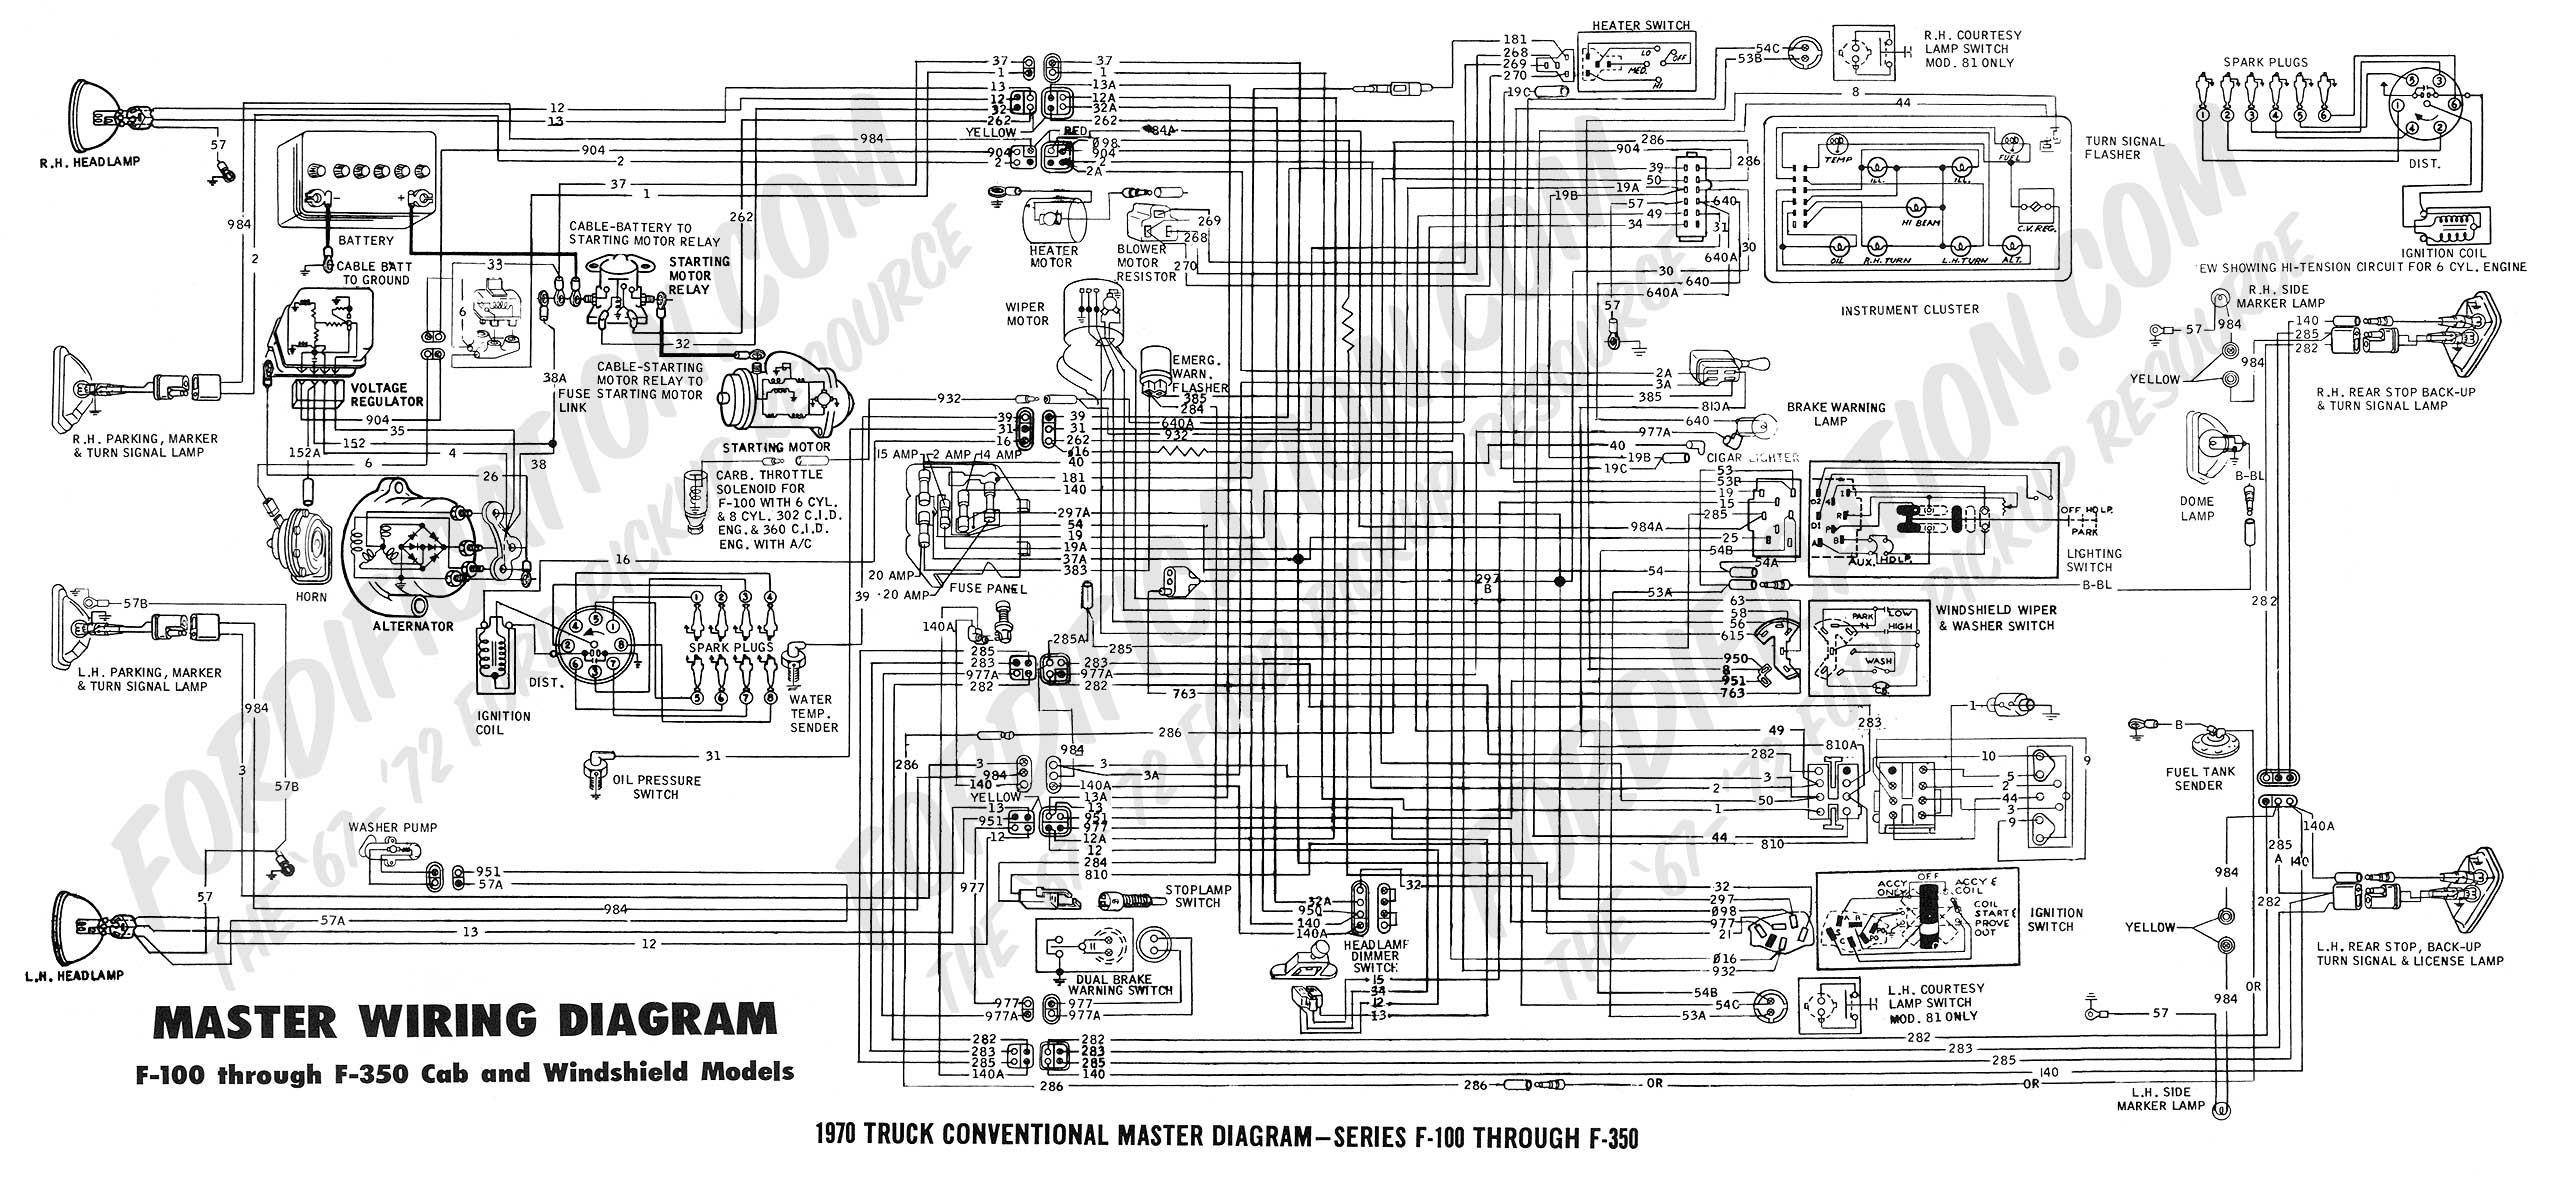 wiring diagram for 2001 f350 trusted schematics wiring diagrams u2022 rh bestbooksrichtreasures com f350 trailer wiring harness 2000 f350 wiring harness